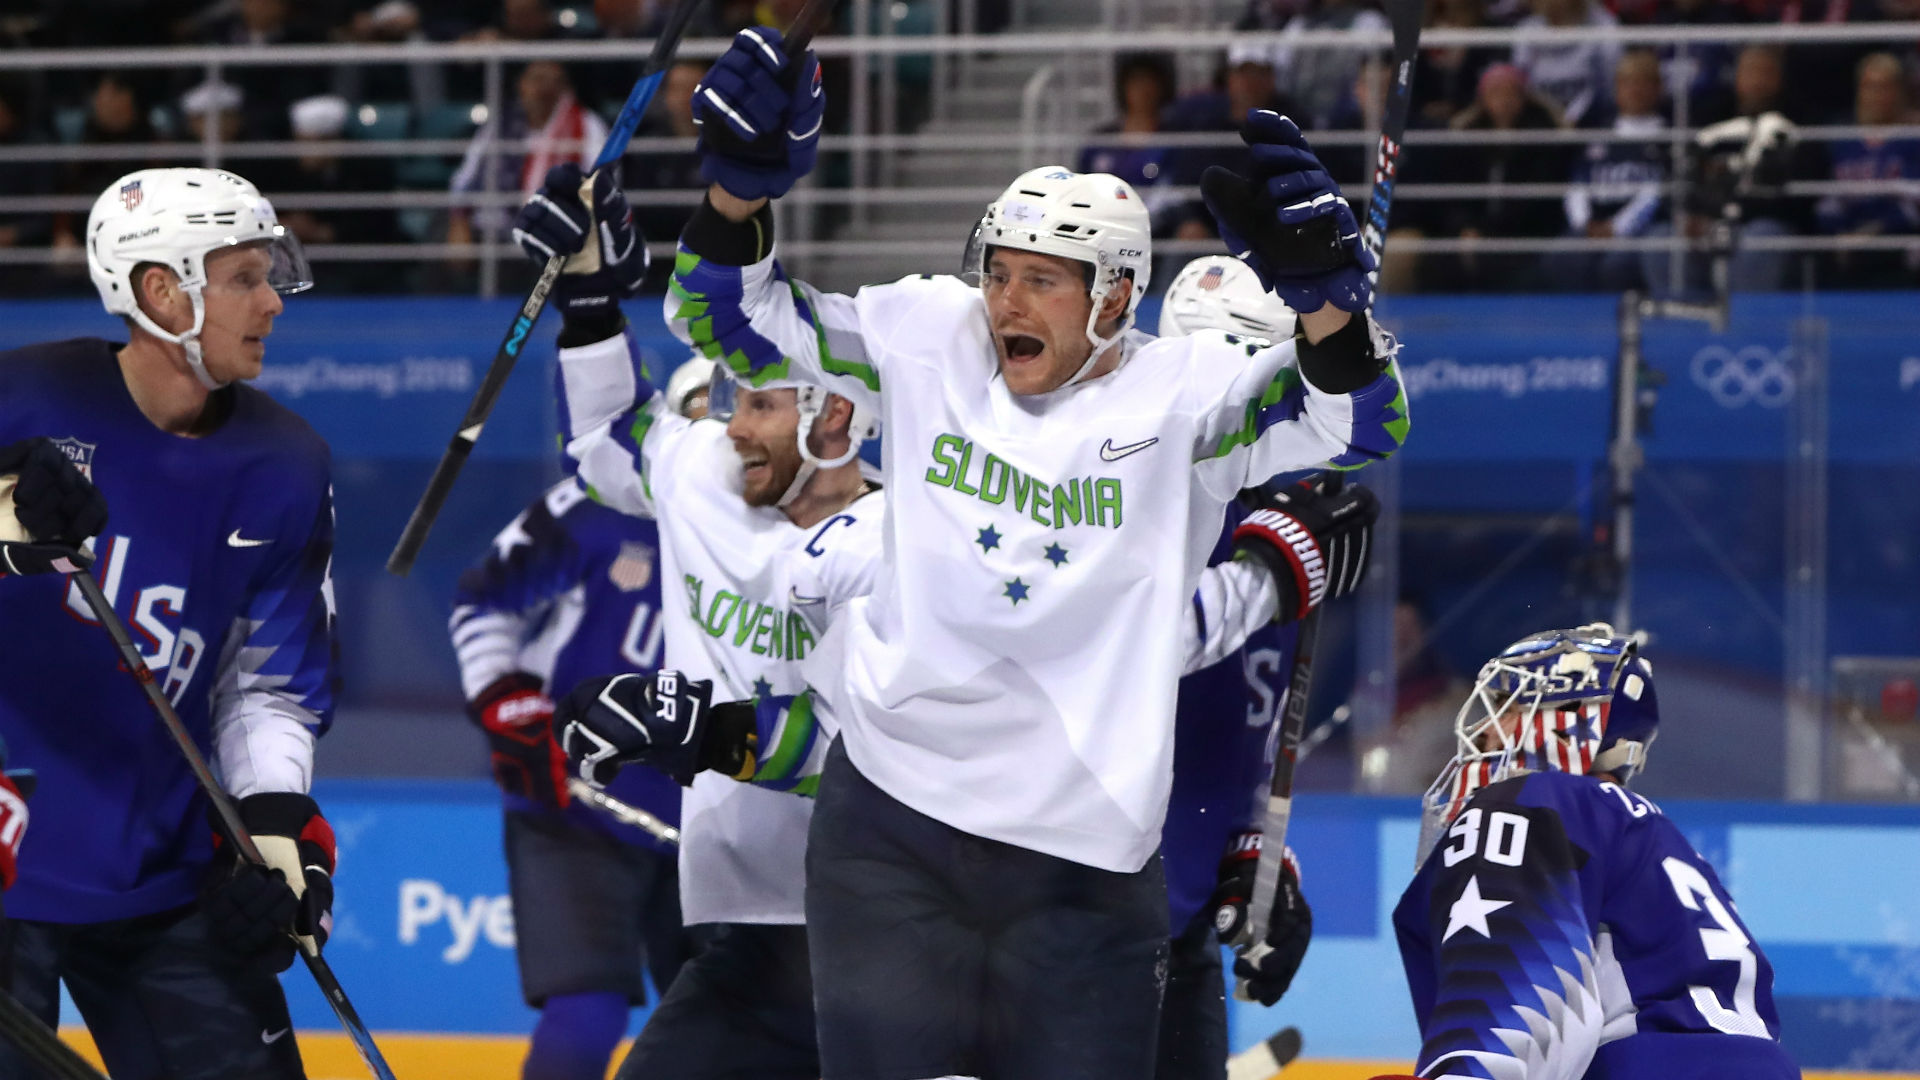 Image result for usa hockey loss to slovenia